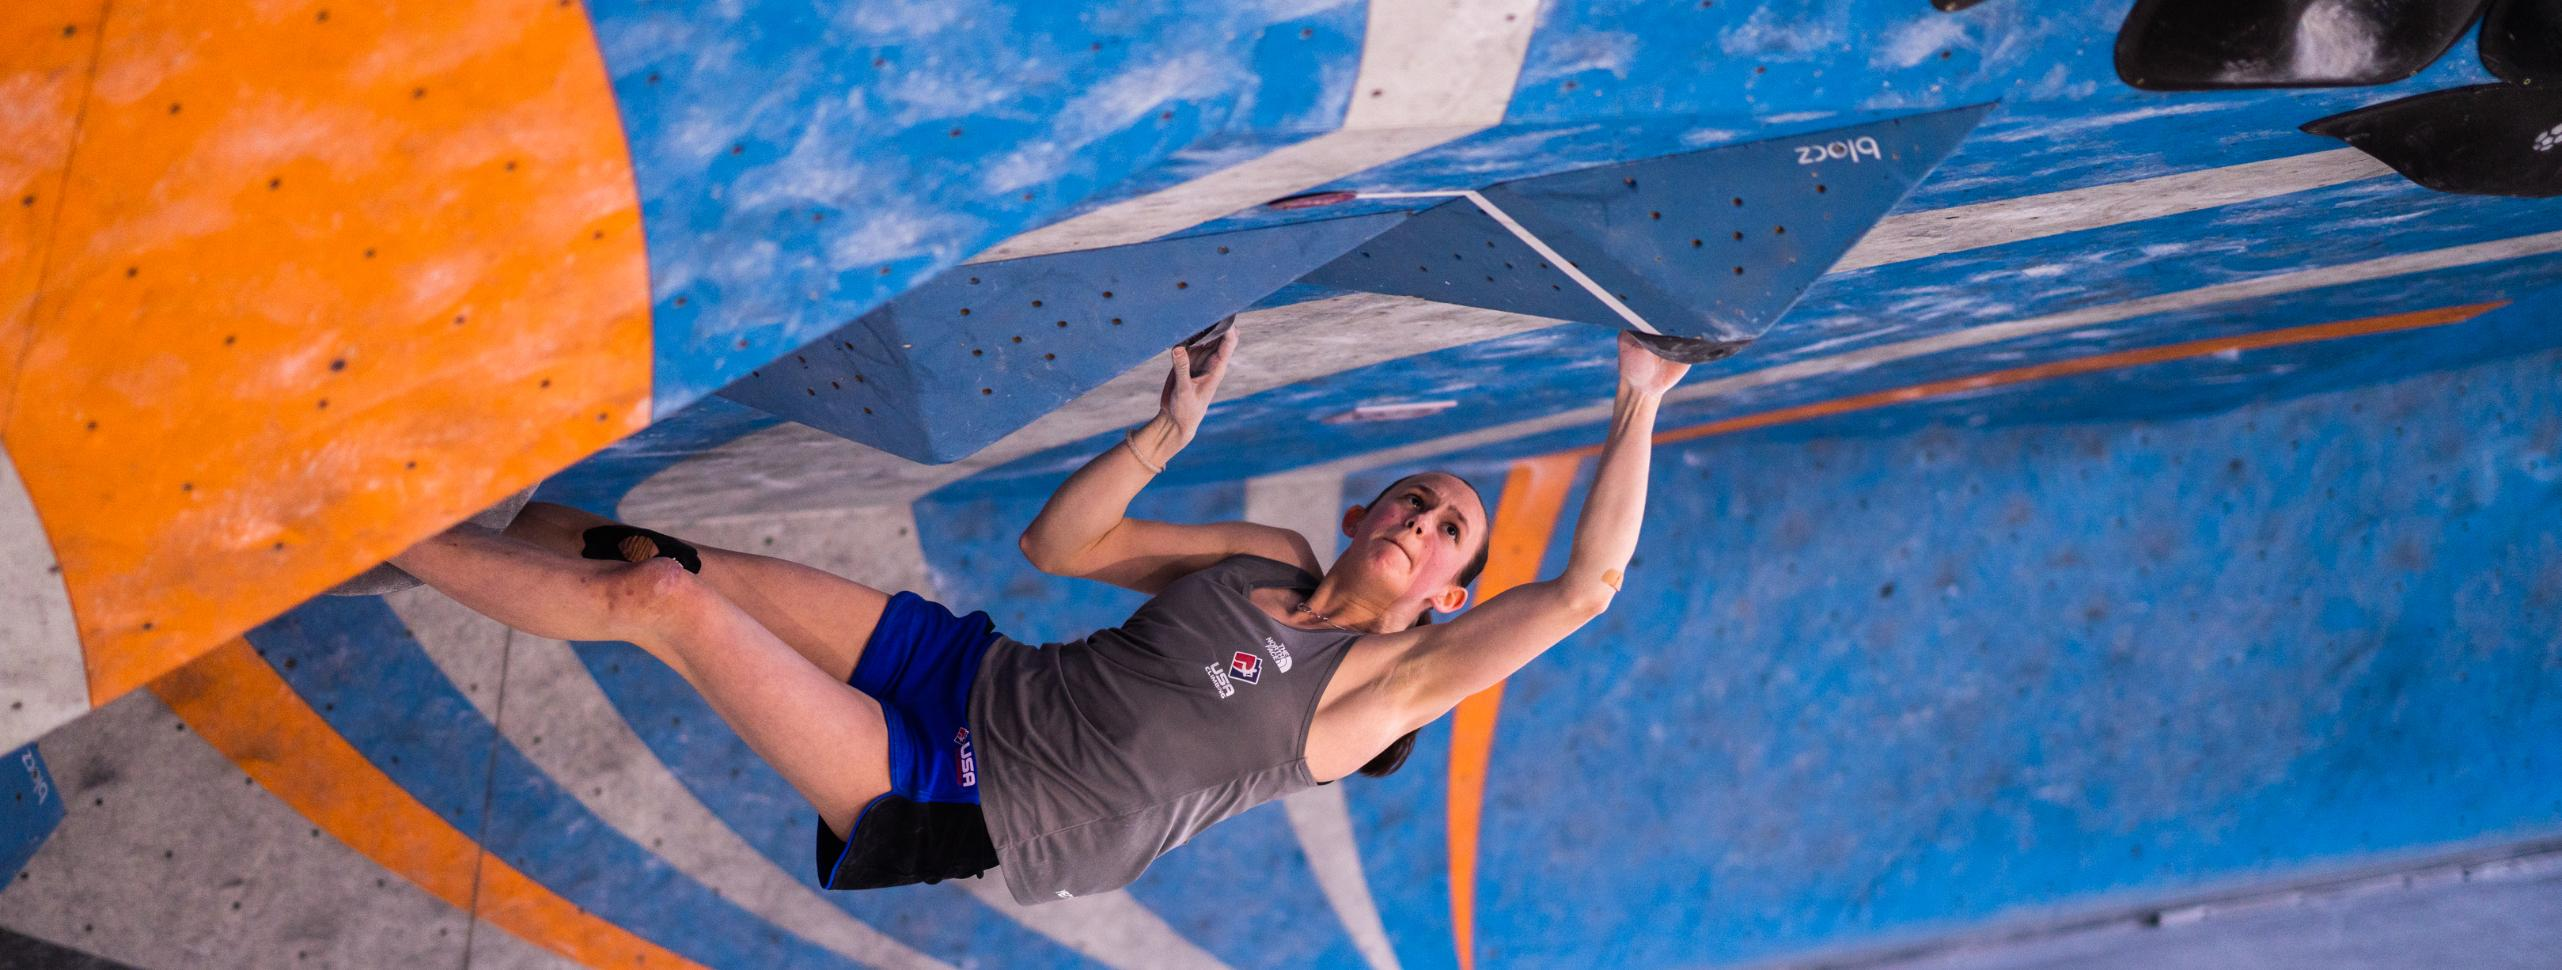 BOTH IFSC WORLD CUP STAGES IN SALT LAKE CITY CONFIRMED